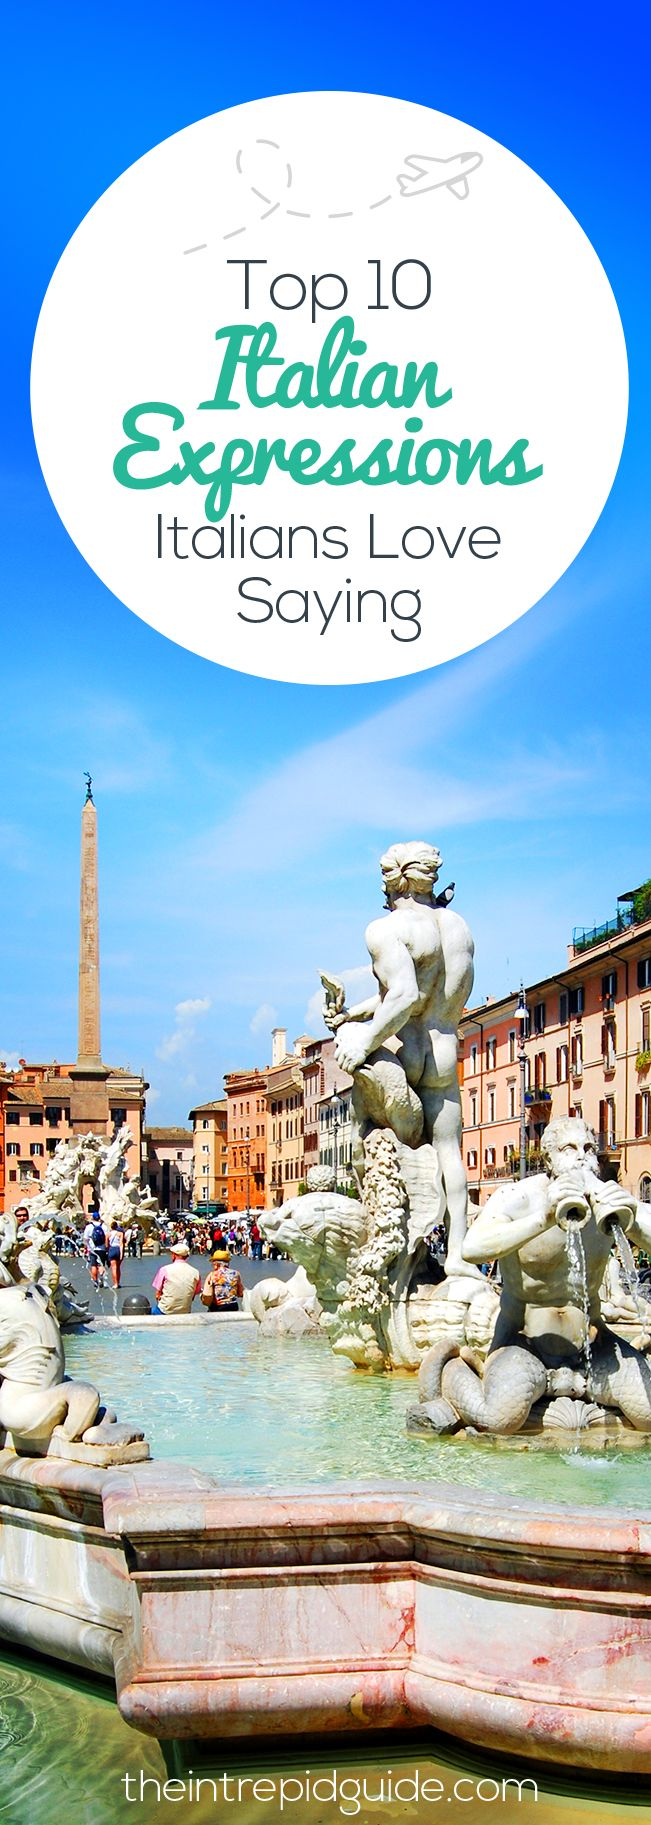 Mi raccomando! Brush up on your essential Italian expressions to sound like a local. Here are the Top 10 Italian Expressions Italians love saying